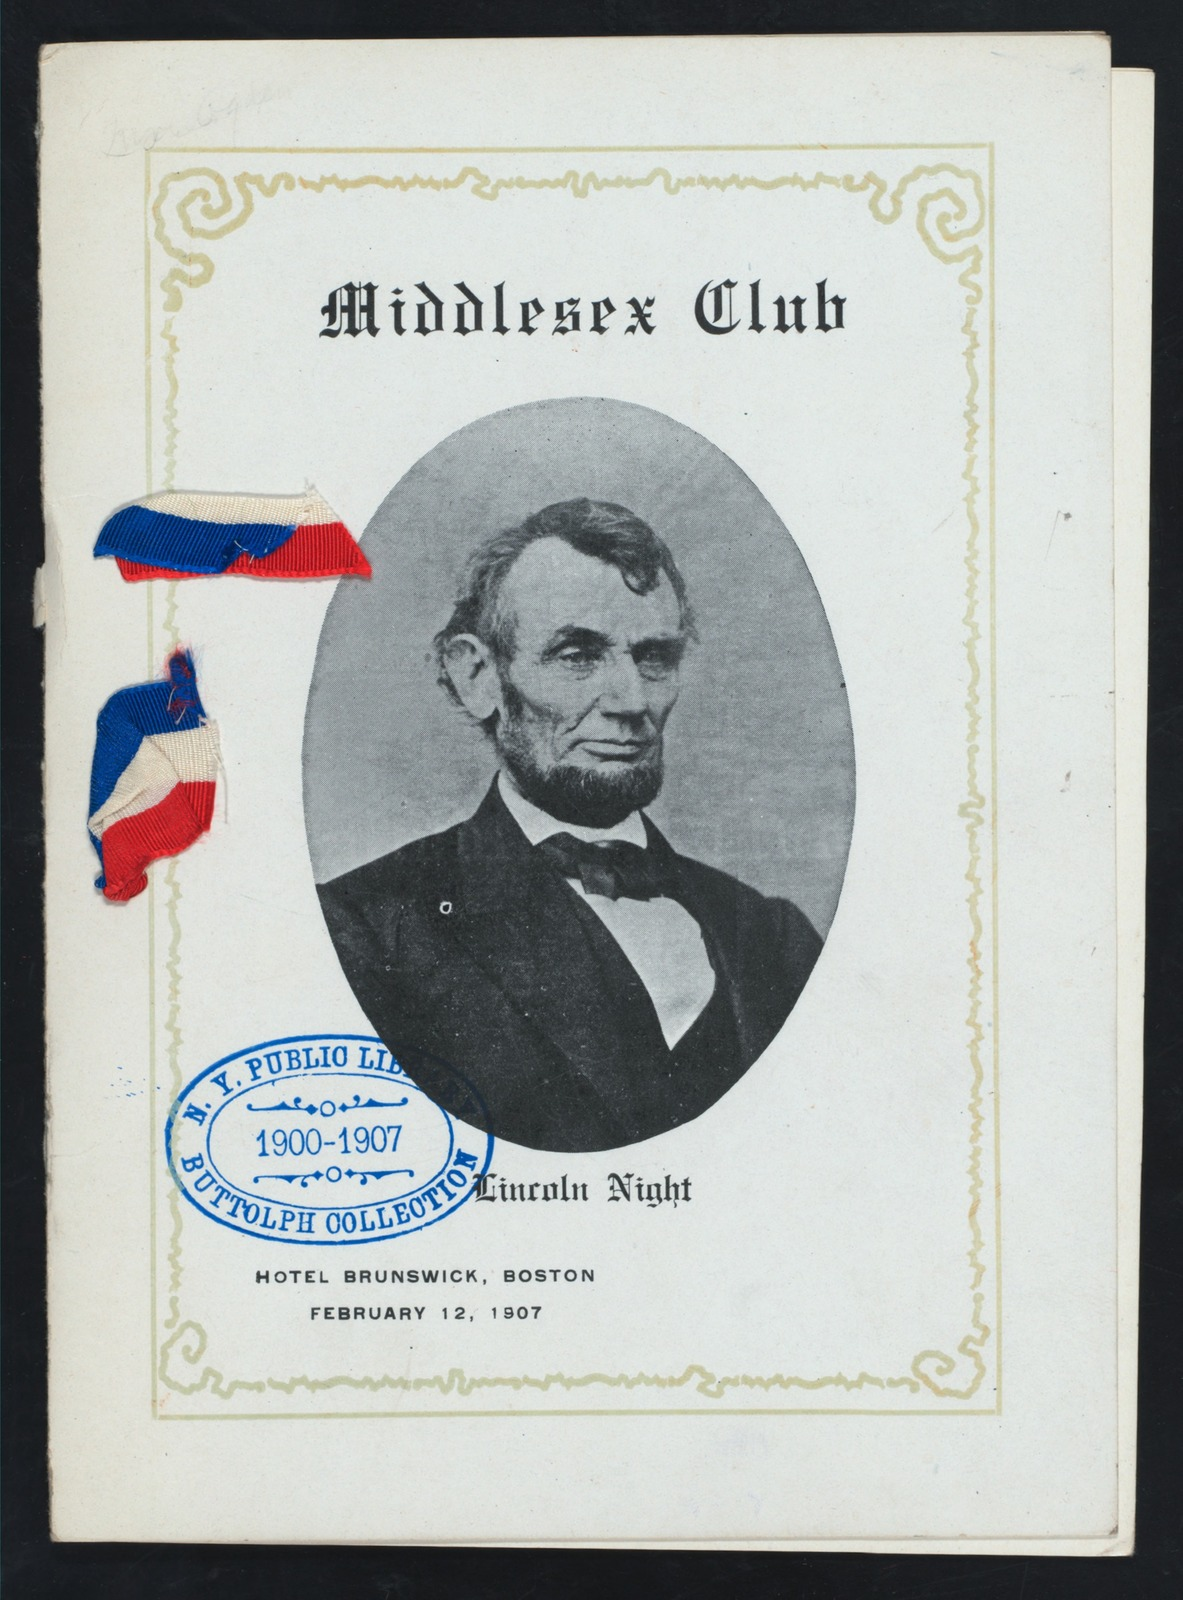 """LINCOLN NIGHT [held by] MIDDLESEX CLUB [at] """"HOTEL BRUNSWICK, BOSTON, MA"""" (HOTEL;)"""